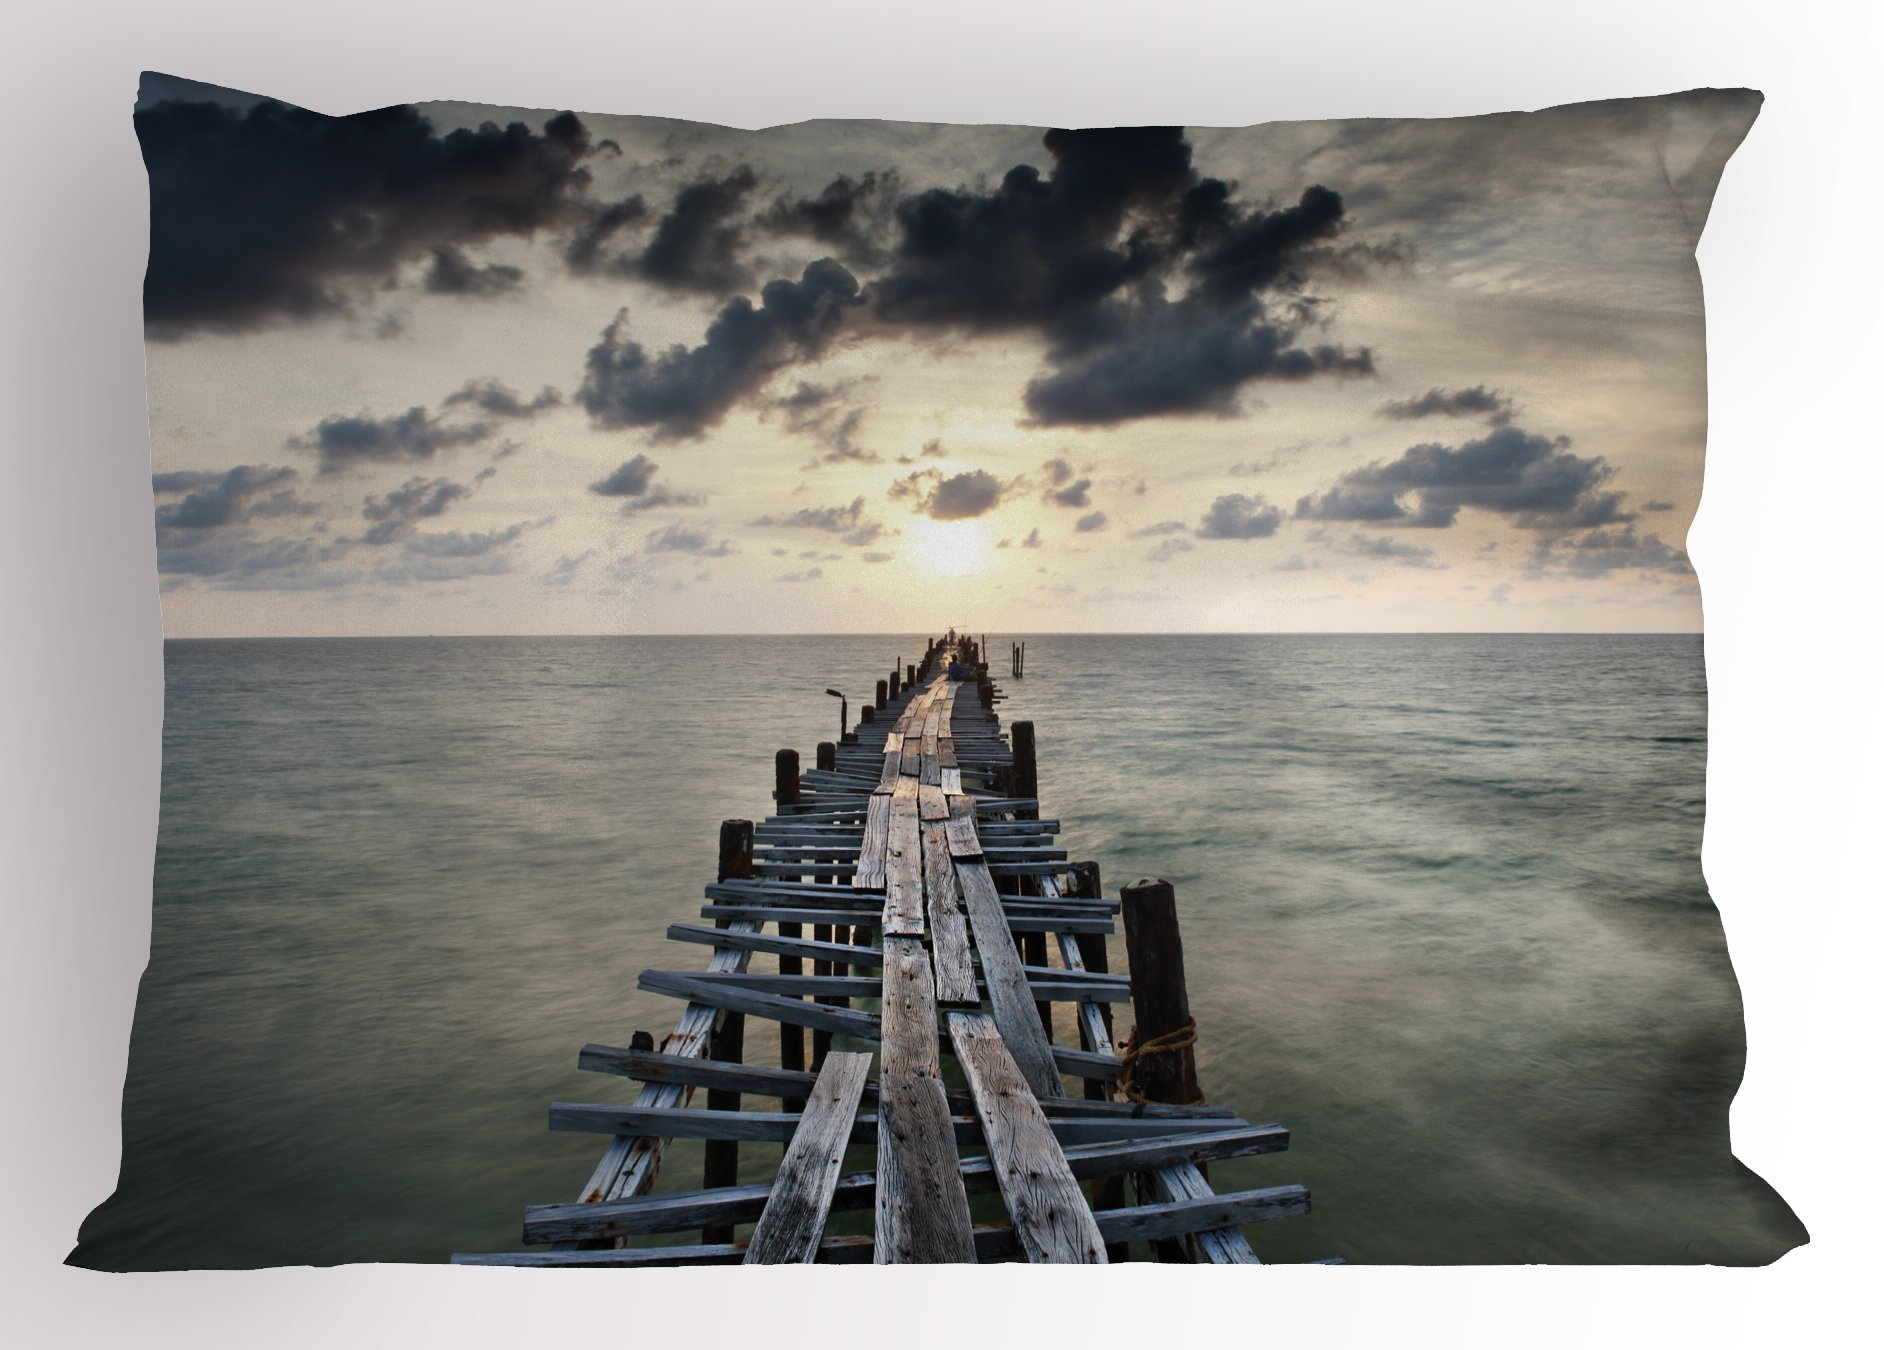 Lunarable Landscape Pillow Sham, Old Wood Bridge Sea Dark Clouds Over Evening Sky Nature Sunset View Seascape, Decorative Standard King Size Printed Pillowcase, 36 X 20 inches, Charcoal Grey by Lunarable (Image #1)